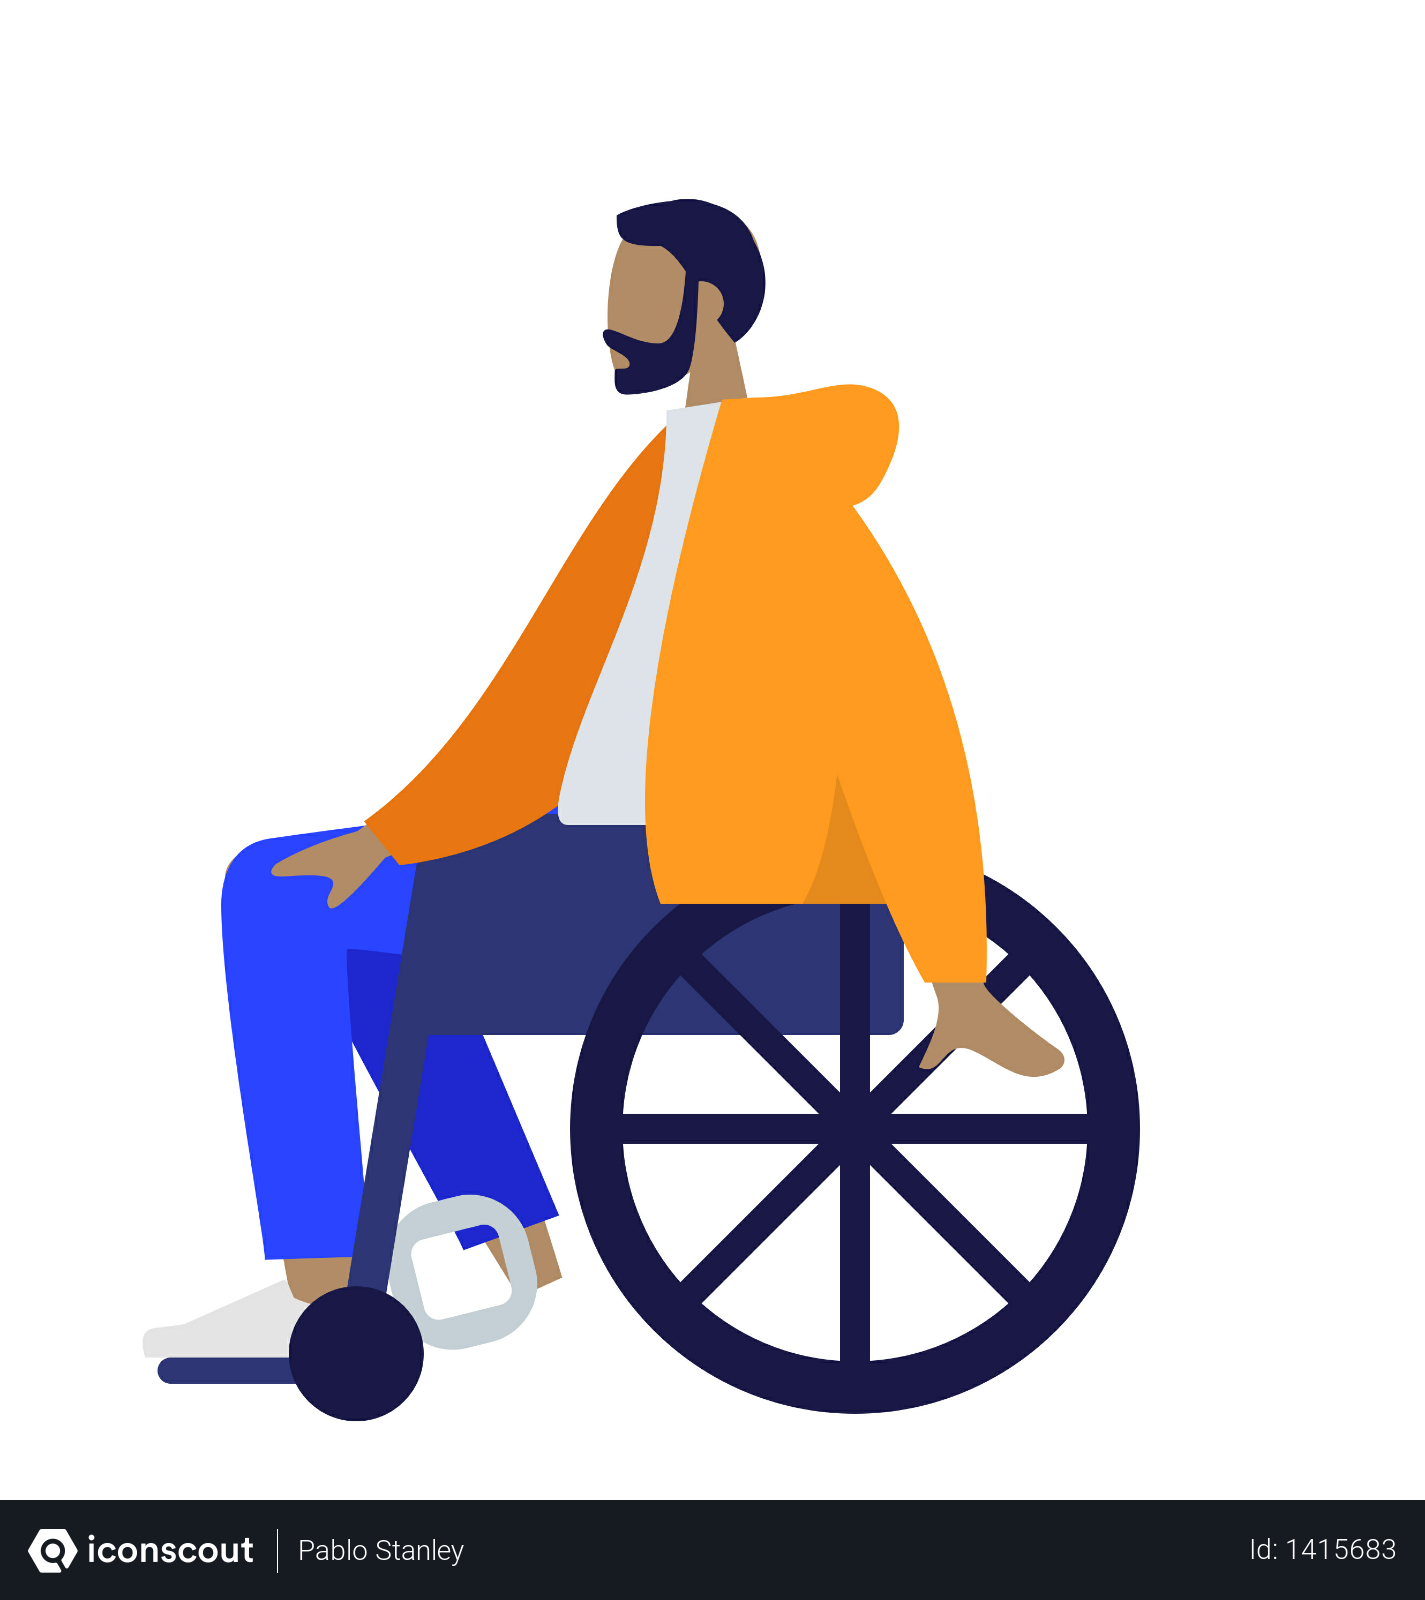 Free Beard Man Sitting On Wheelchair Illustration Download In Png Vector Format Illustration People Illustration Man Illustration